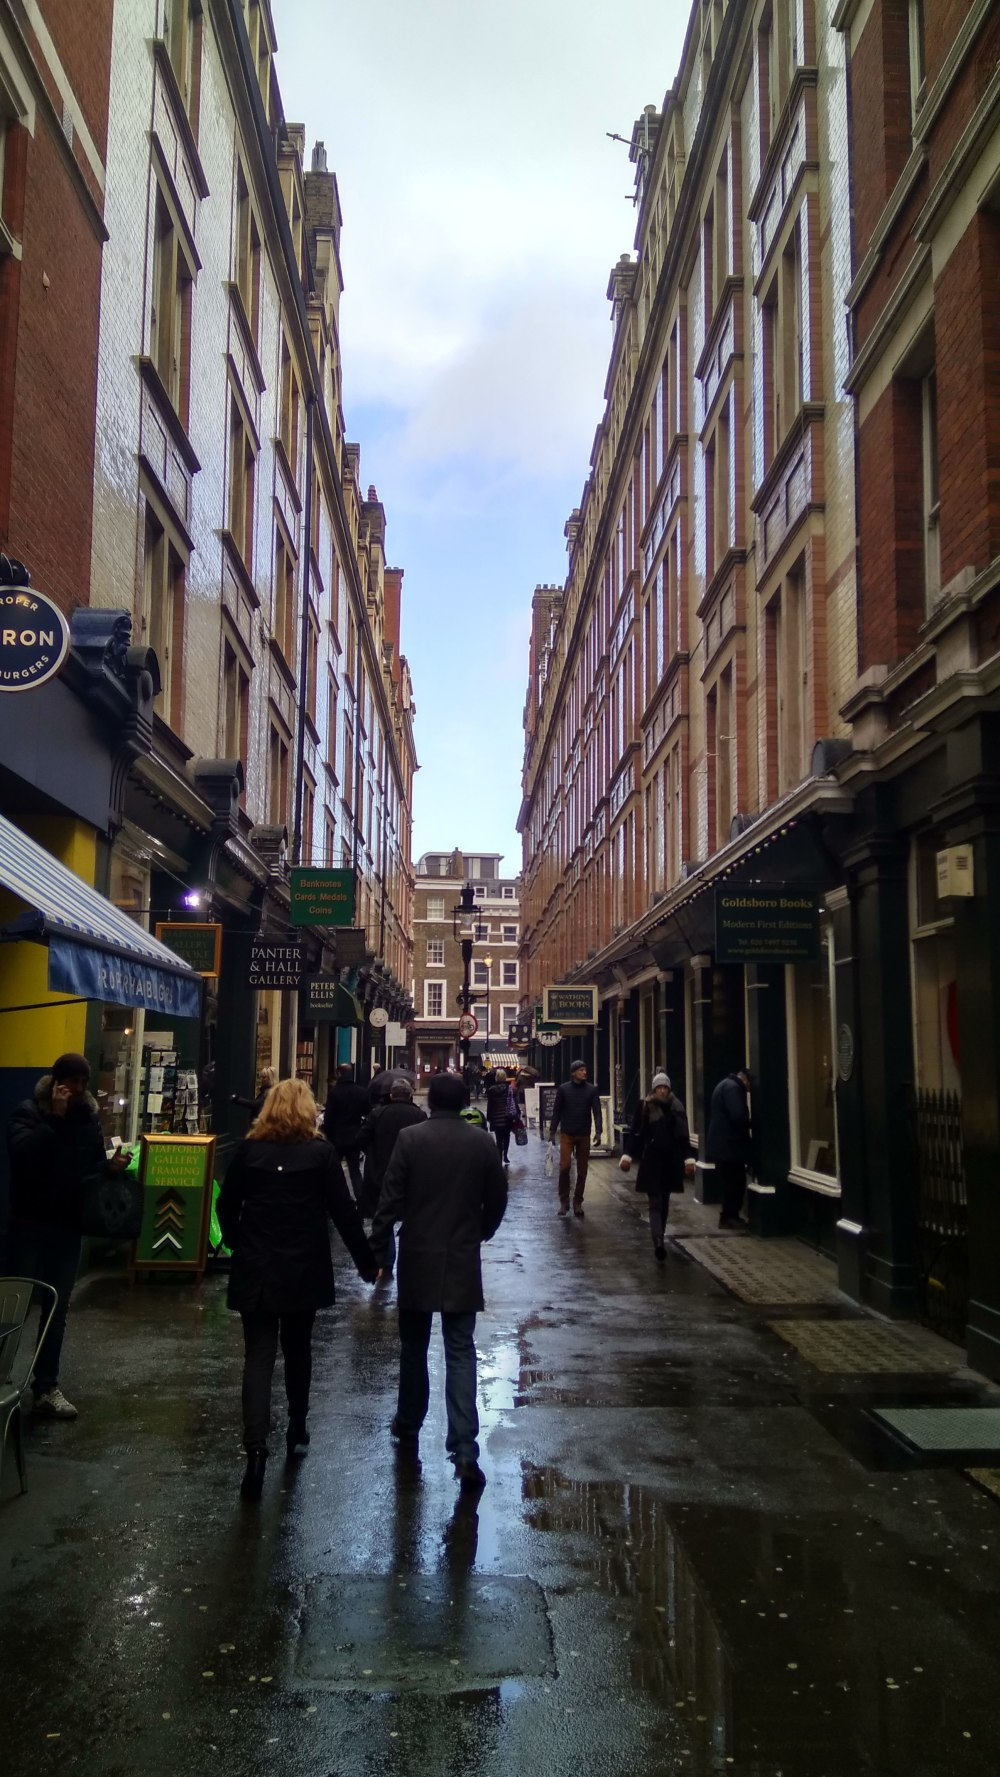 Cecil Court, WC2 - this location was also used for the Diagon Alley scenes .